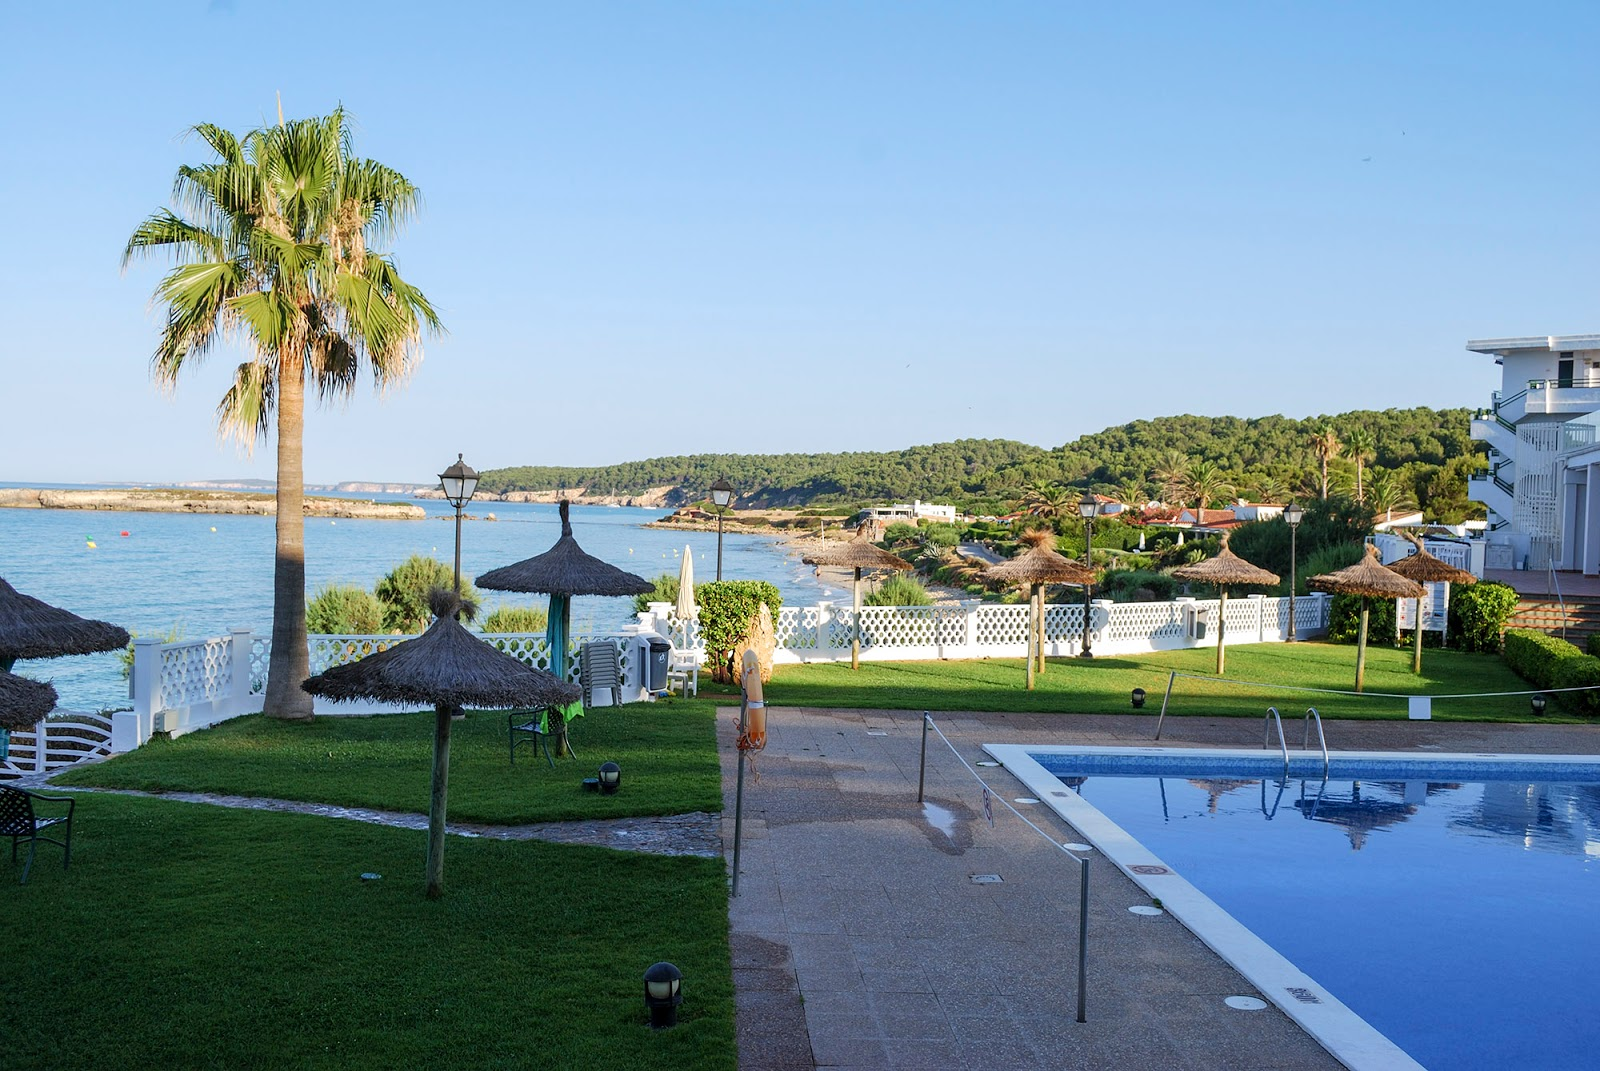 Sol Beach House Menorca Spain Melia Hotel swimming pool